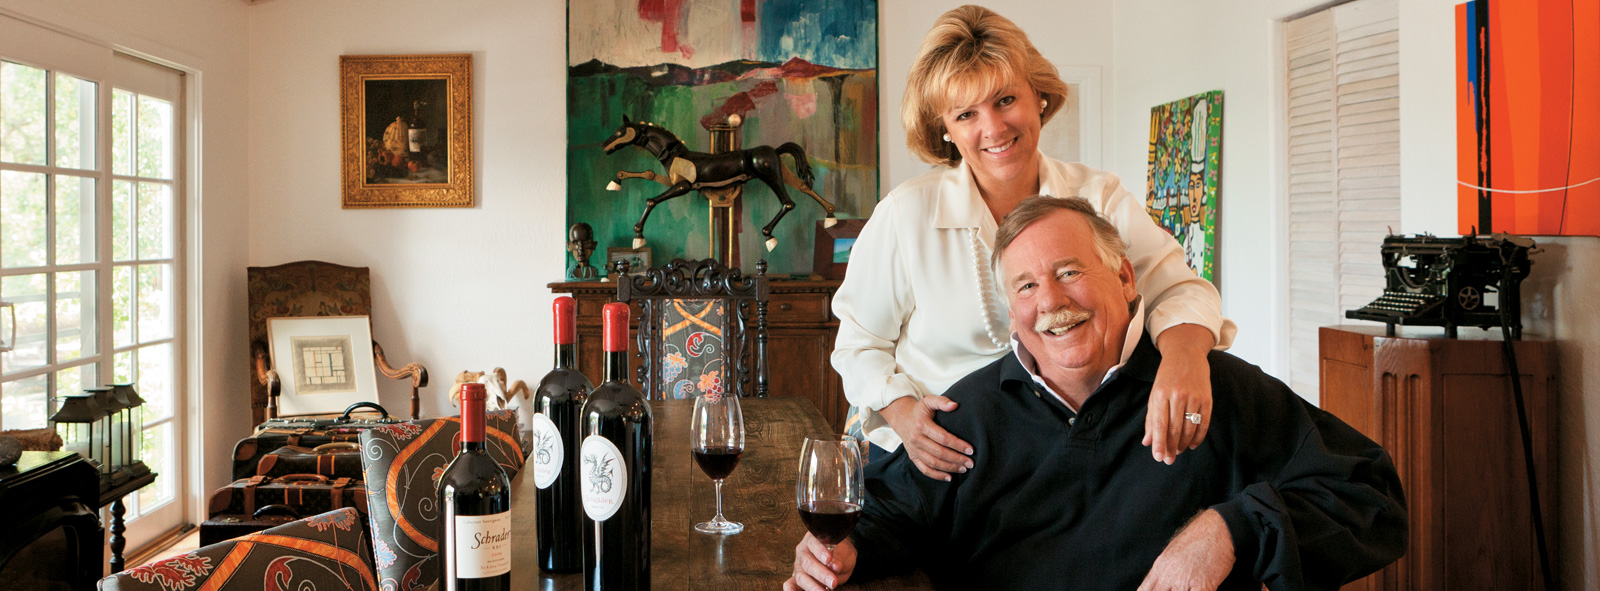 Select to access video of First Republic Small Businesses client(s) Schrader Cellars